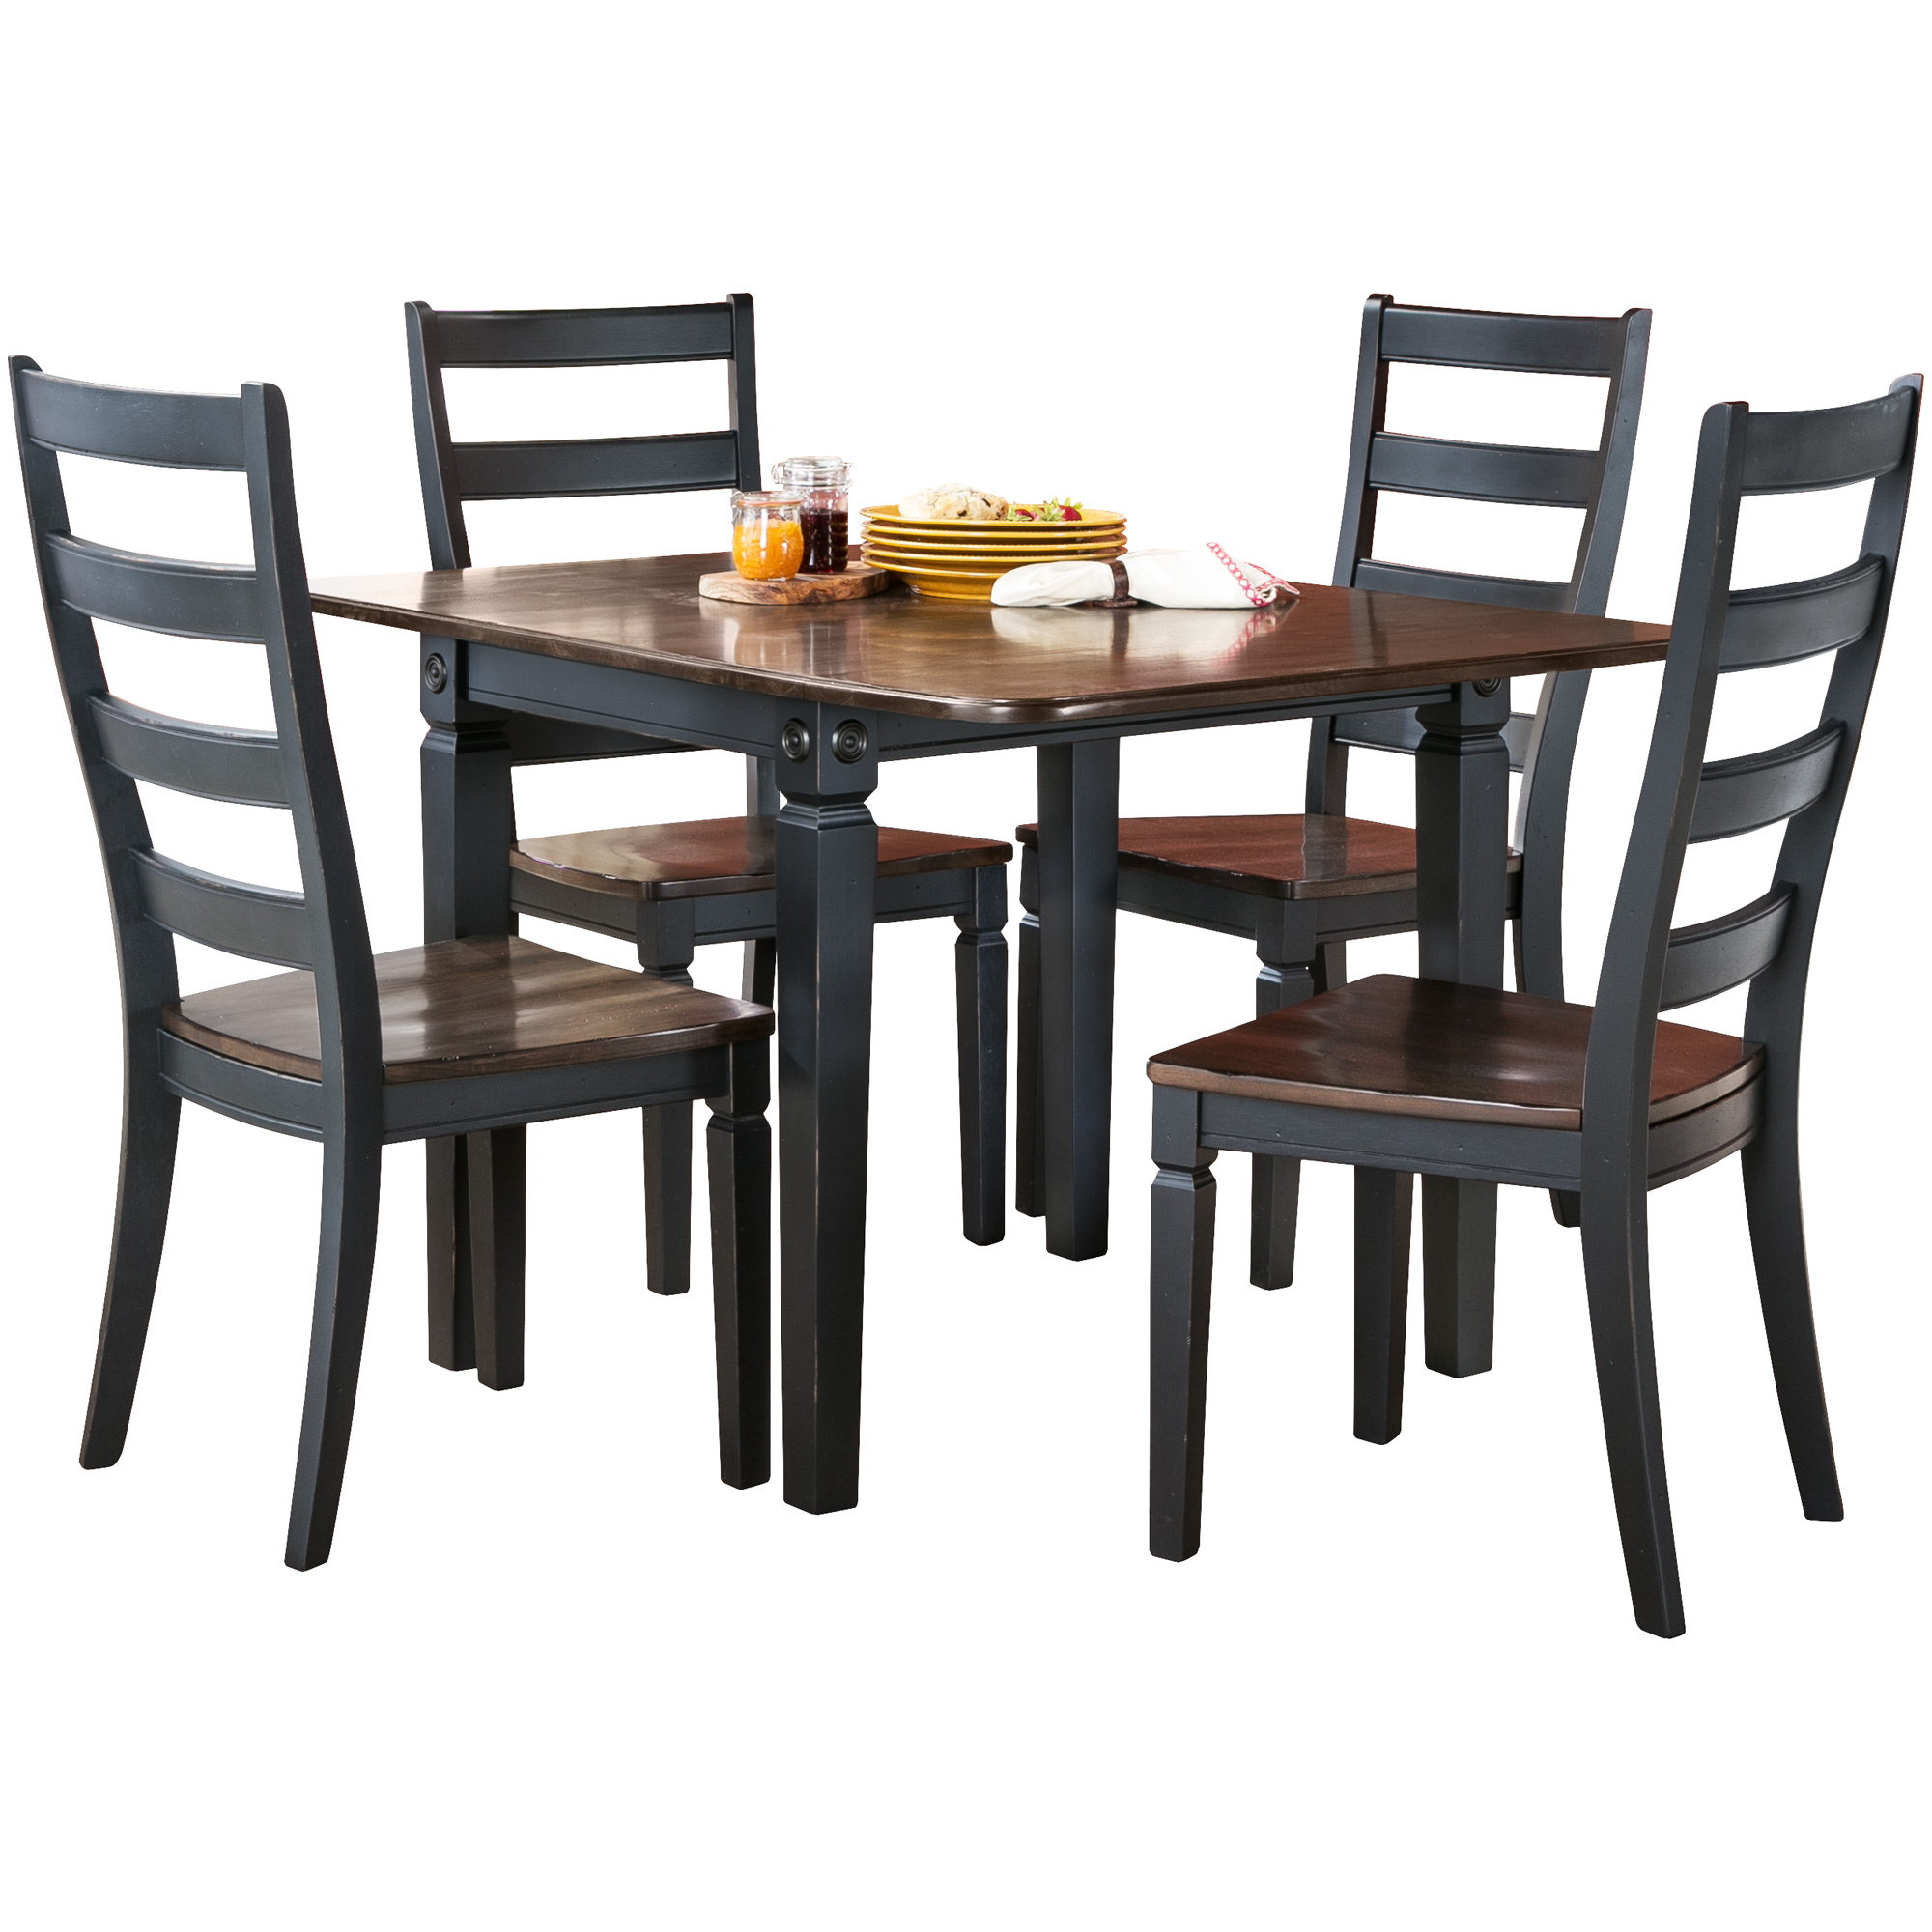 Intercon | Glennwood 5 Piece Black Dining Set